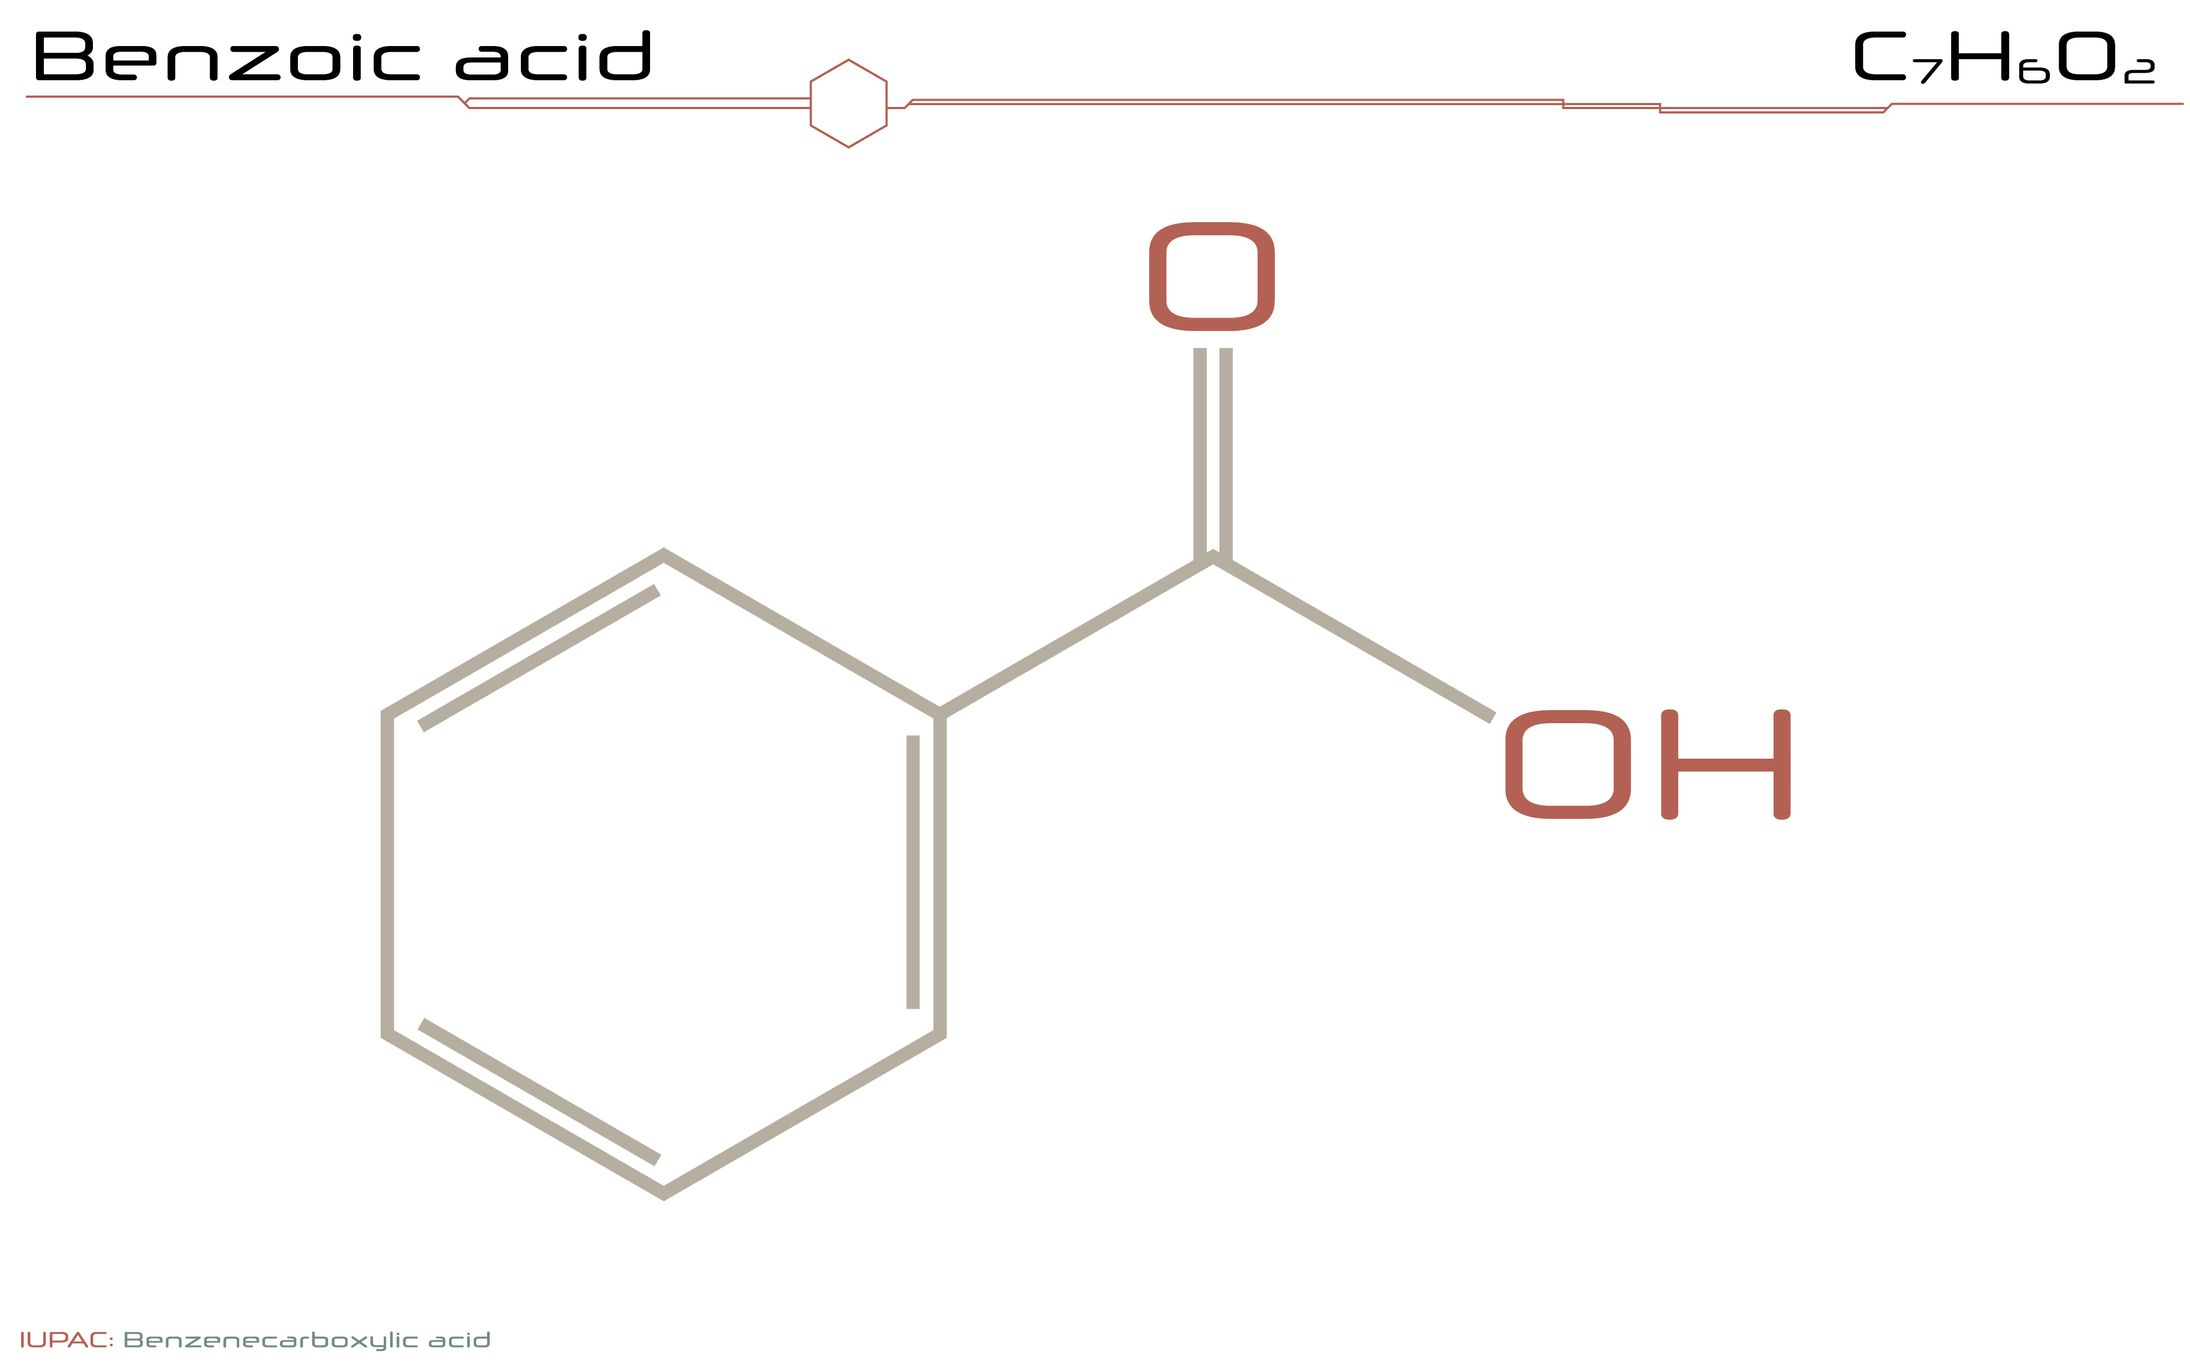 Chemical structure of benzoic acid.